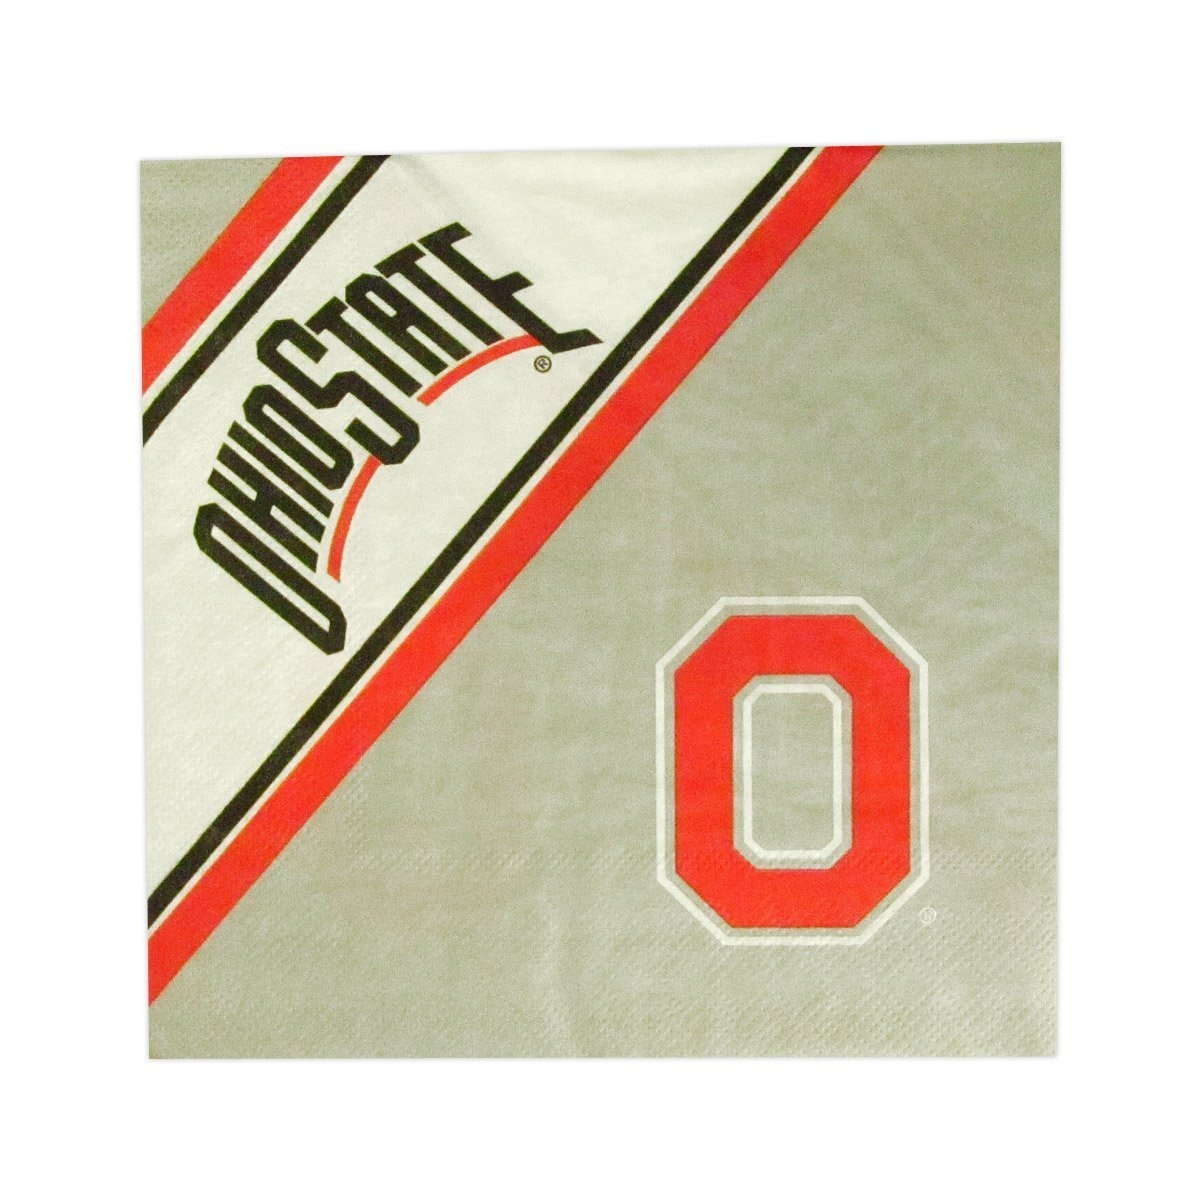 Ohio State Buckeyes Disposable Napkins - 9413107003 - Ncaa College Ohio State Osu Buckeyes Kitchen Dining Dinnerware 9413107003